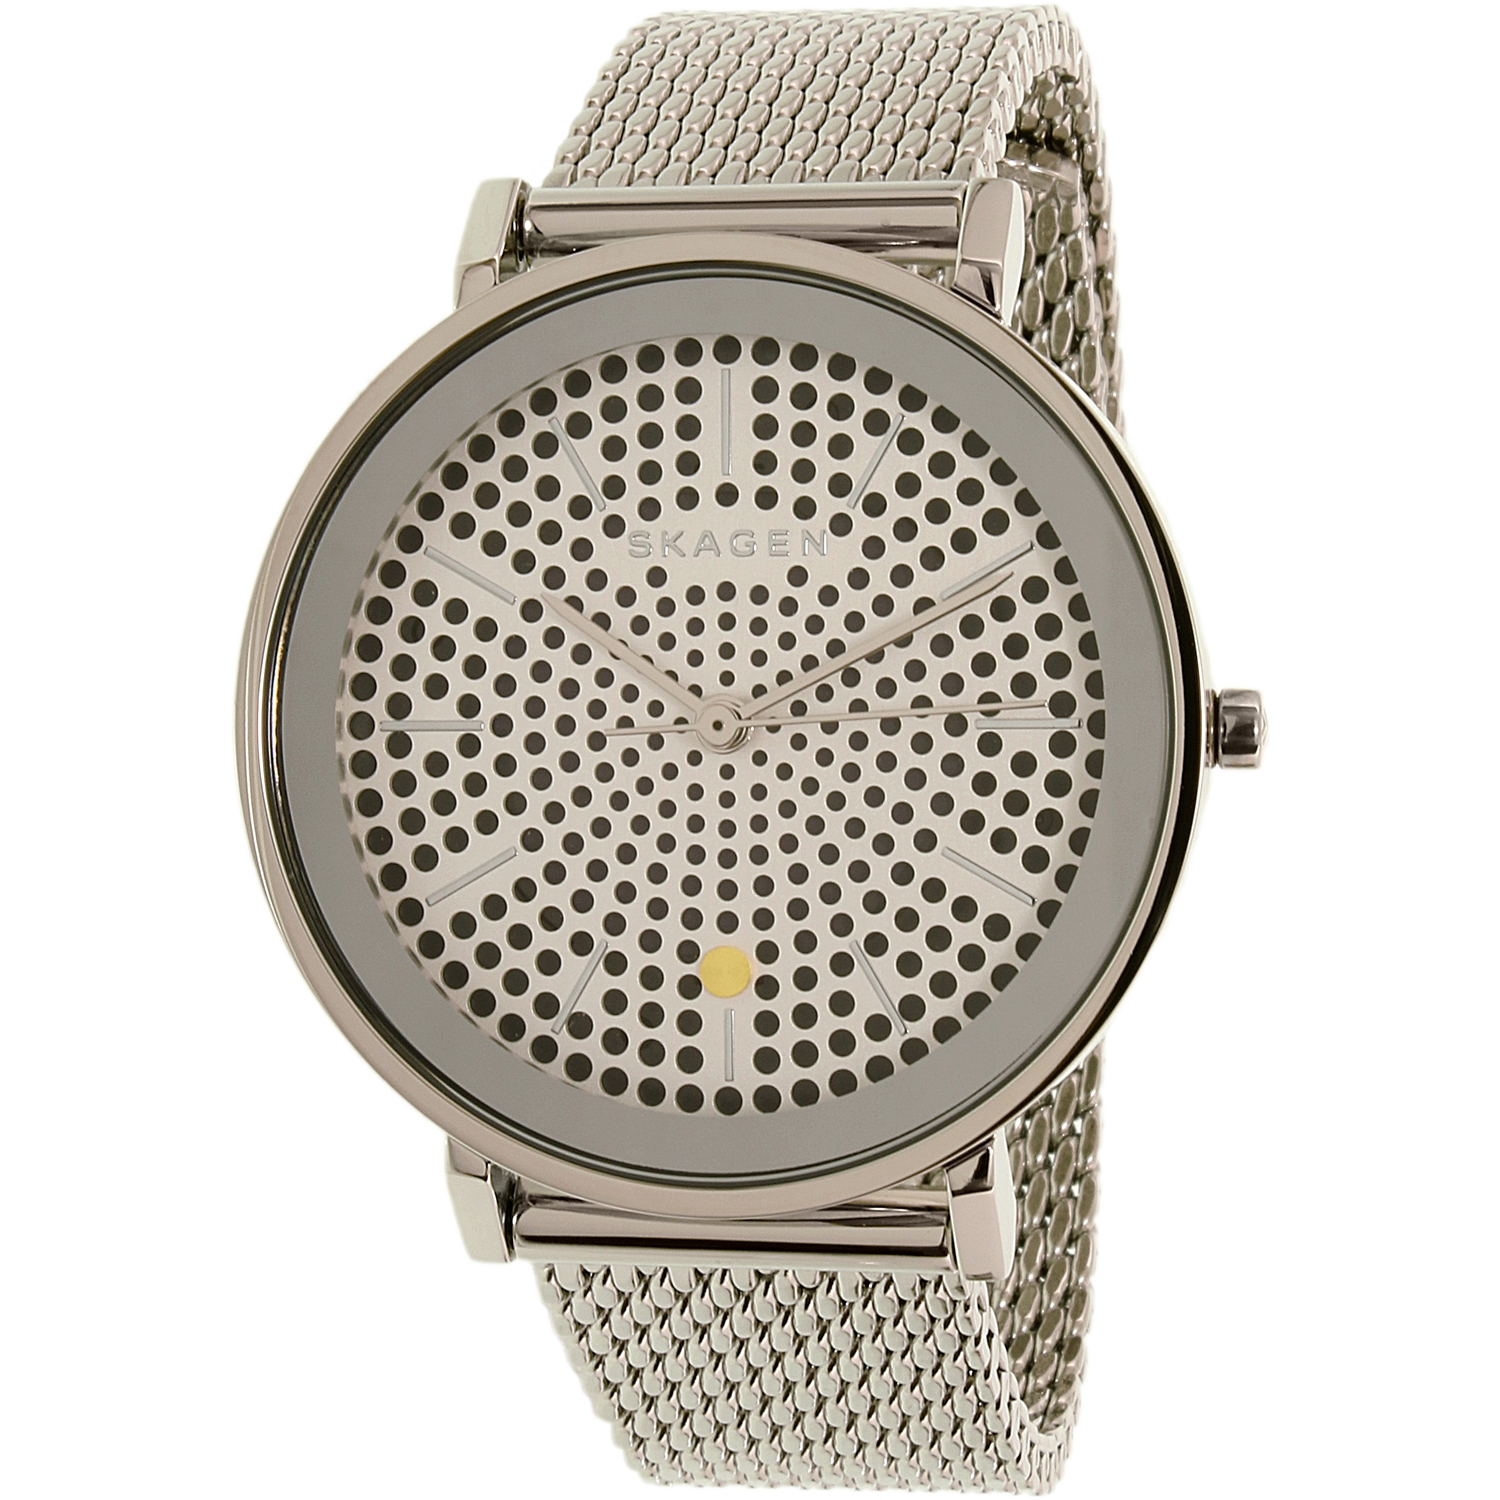 Skagen Men's Hald SKW2446 Silver Stainless-Steel Quartz Watch